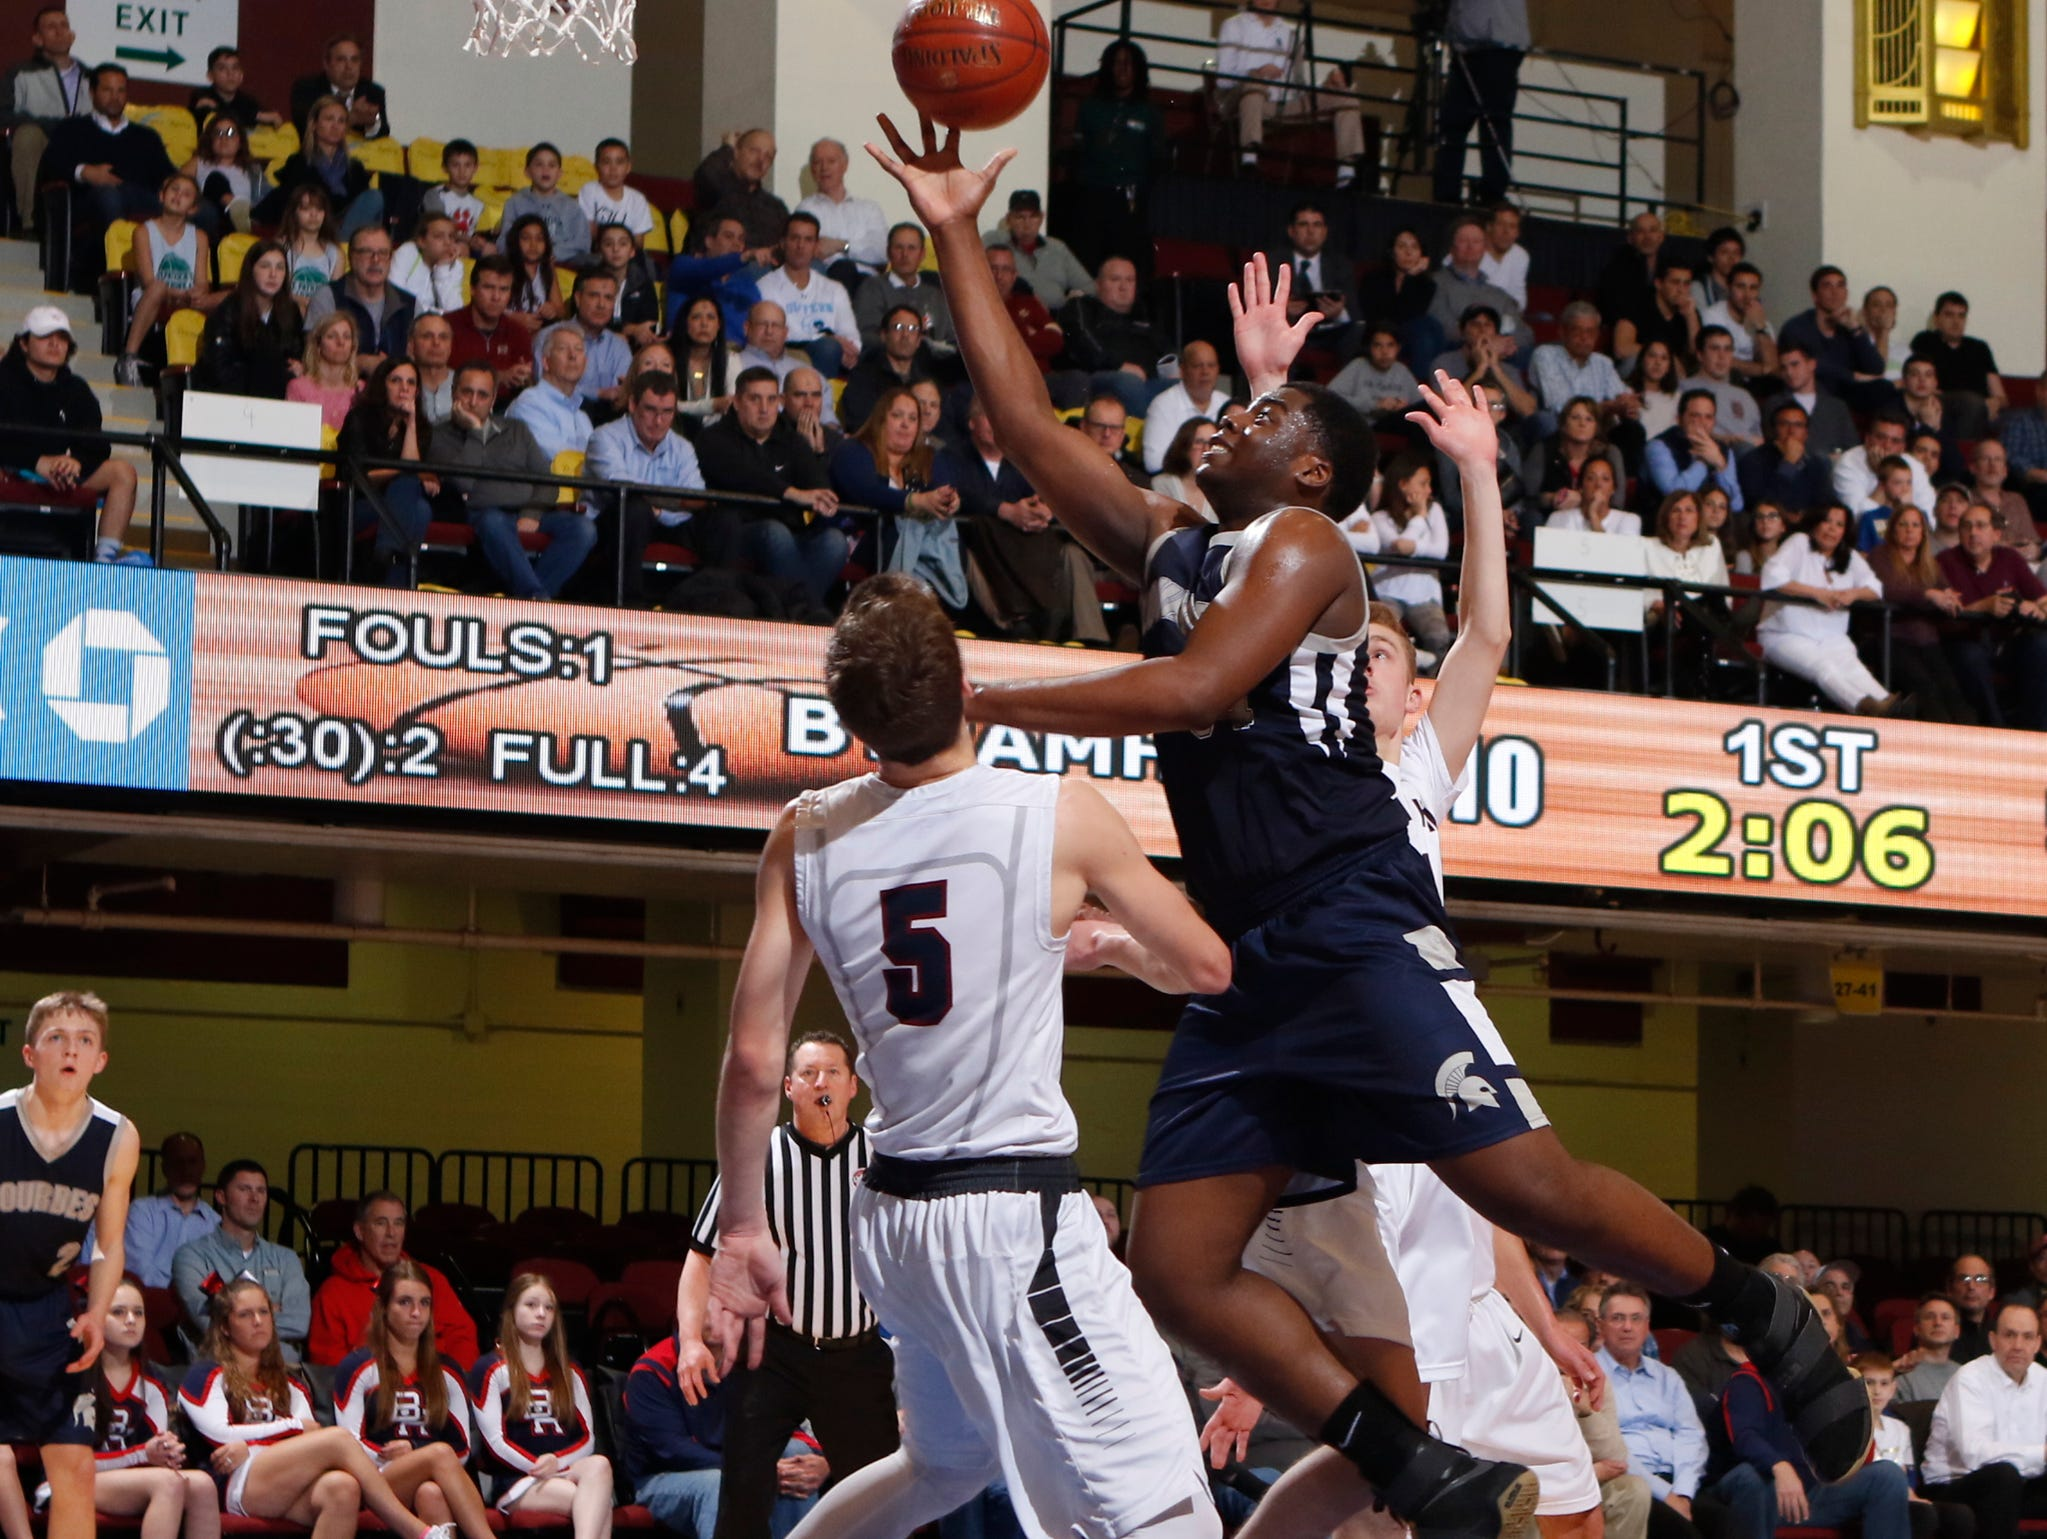 Our Lady of Lourdes High School's James Anozie takes a shot in traffic against Byram Hills in a Section 1 Class A semifinal on March 1 at the Westchester County Center.